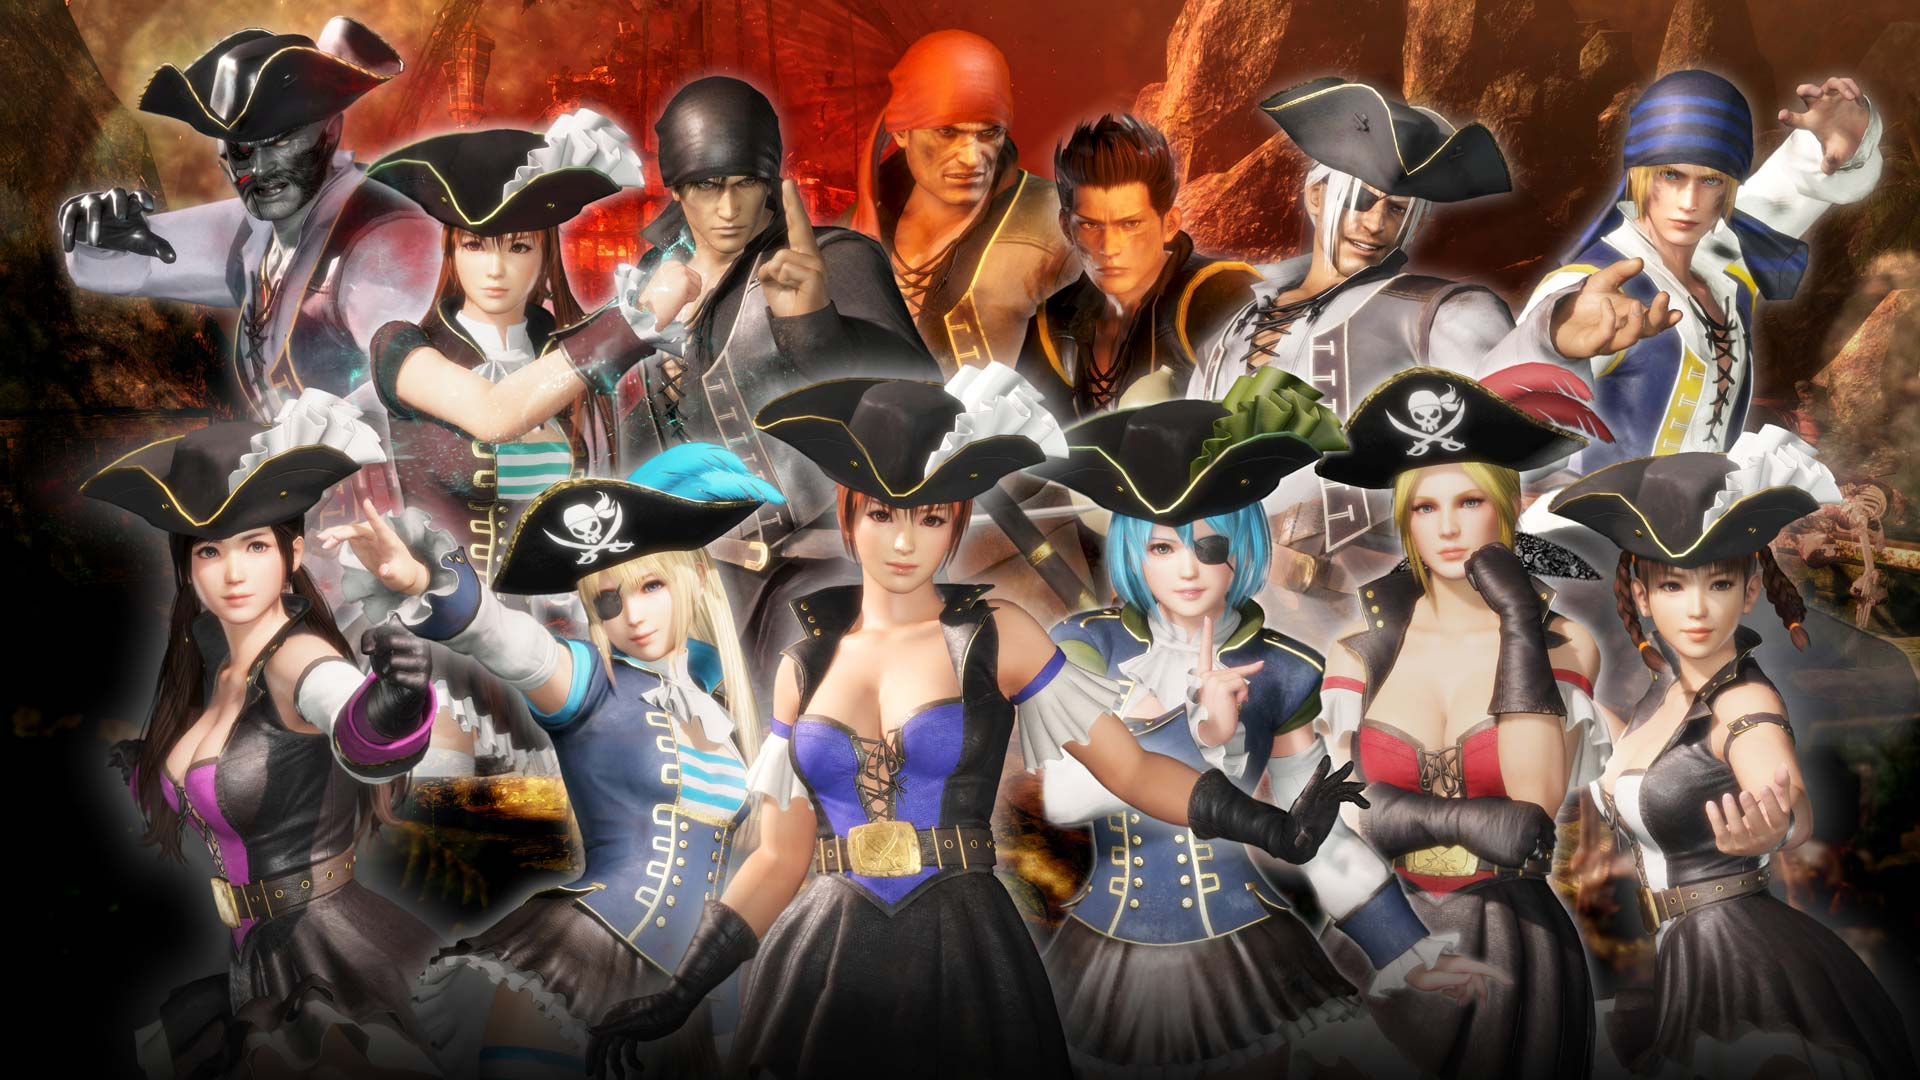 Dead Or Alive 6 公式サイト Top